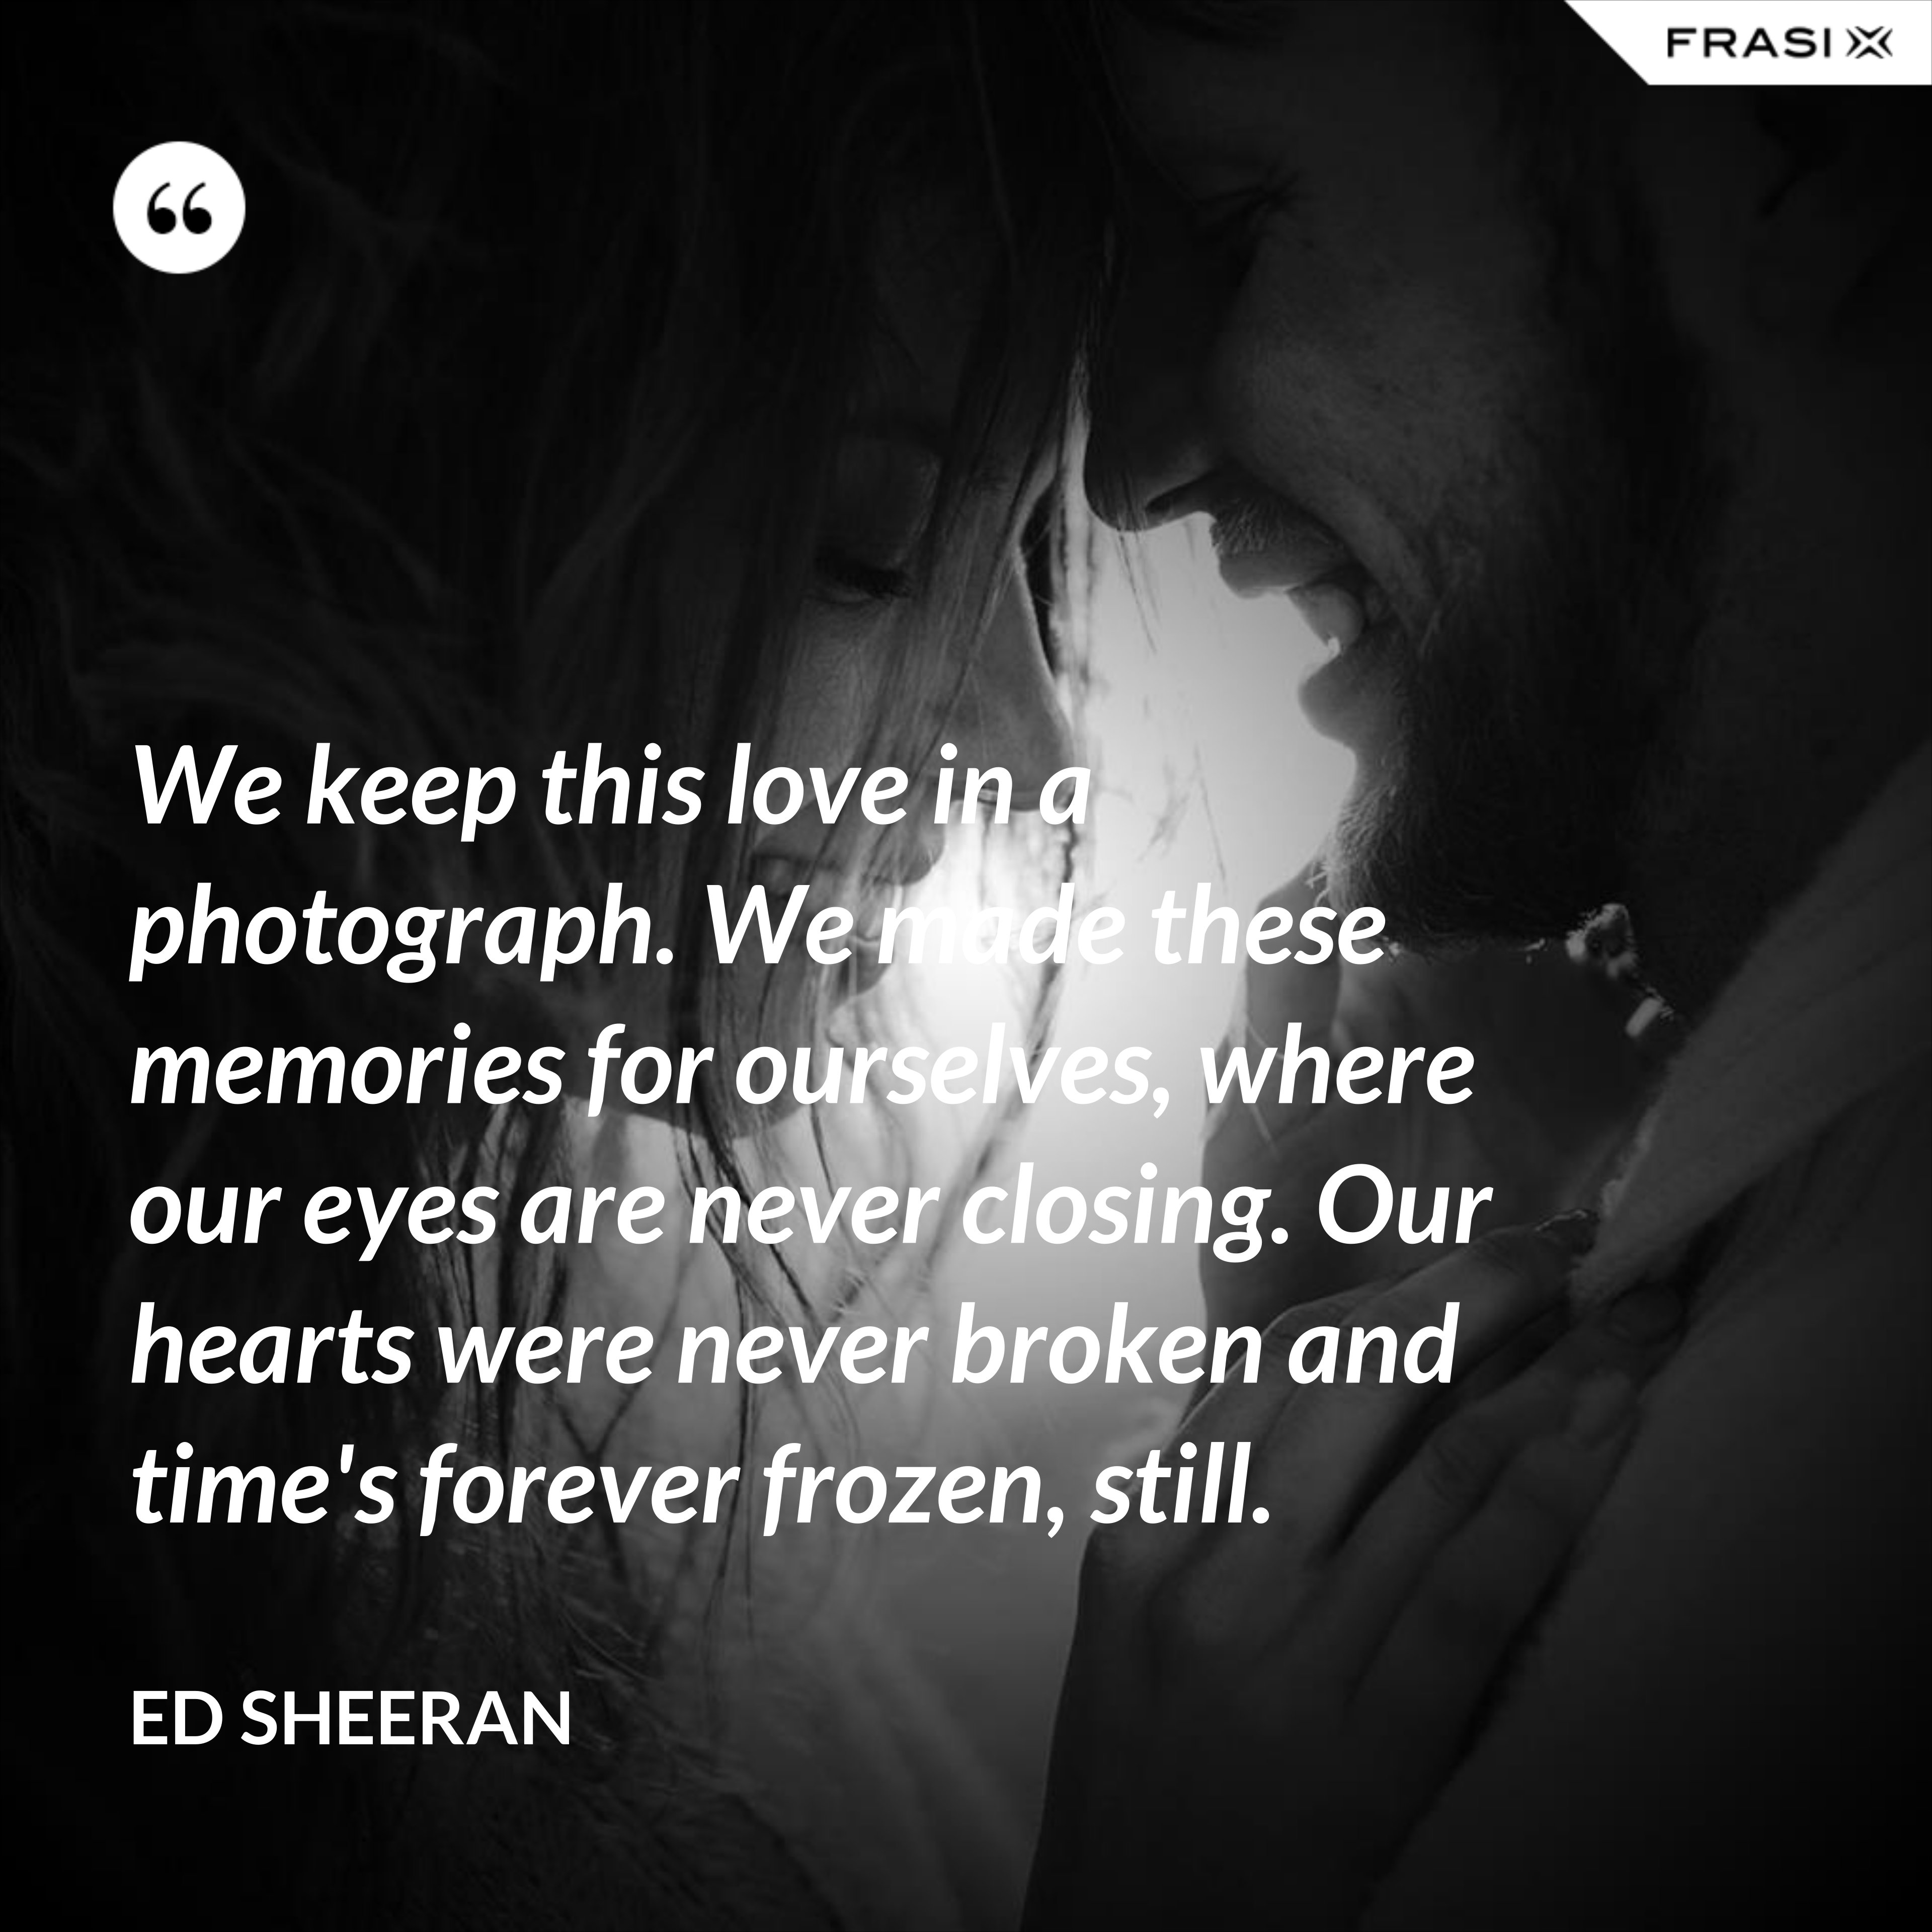 We keep this love in a photograph. We made these memories for ourselves, where our eyes are never closing. Our hearts were never broken and time's forever frozen, still. - Ed Sheeran